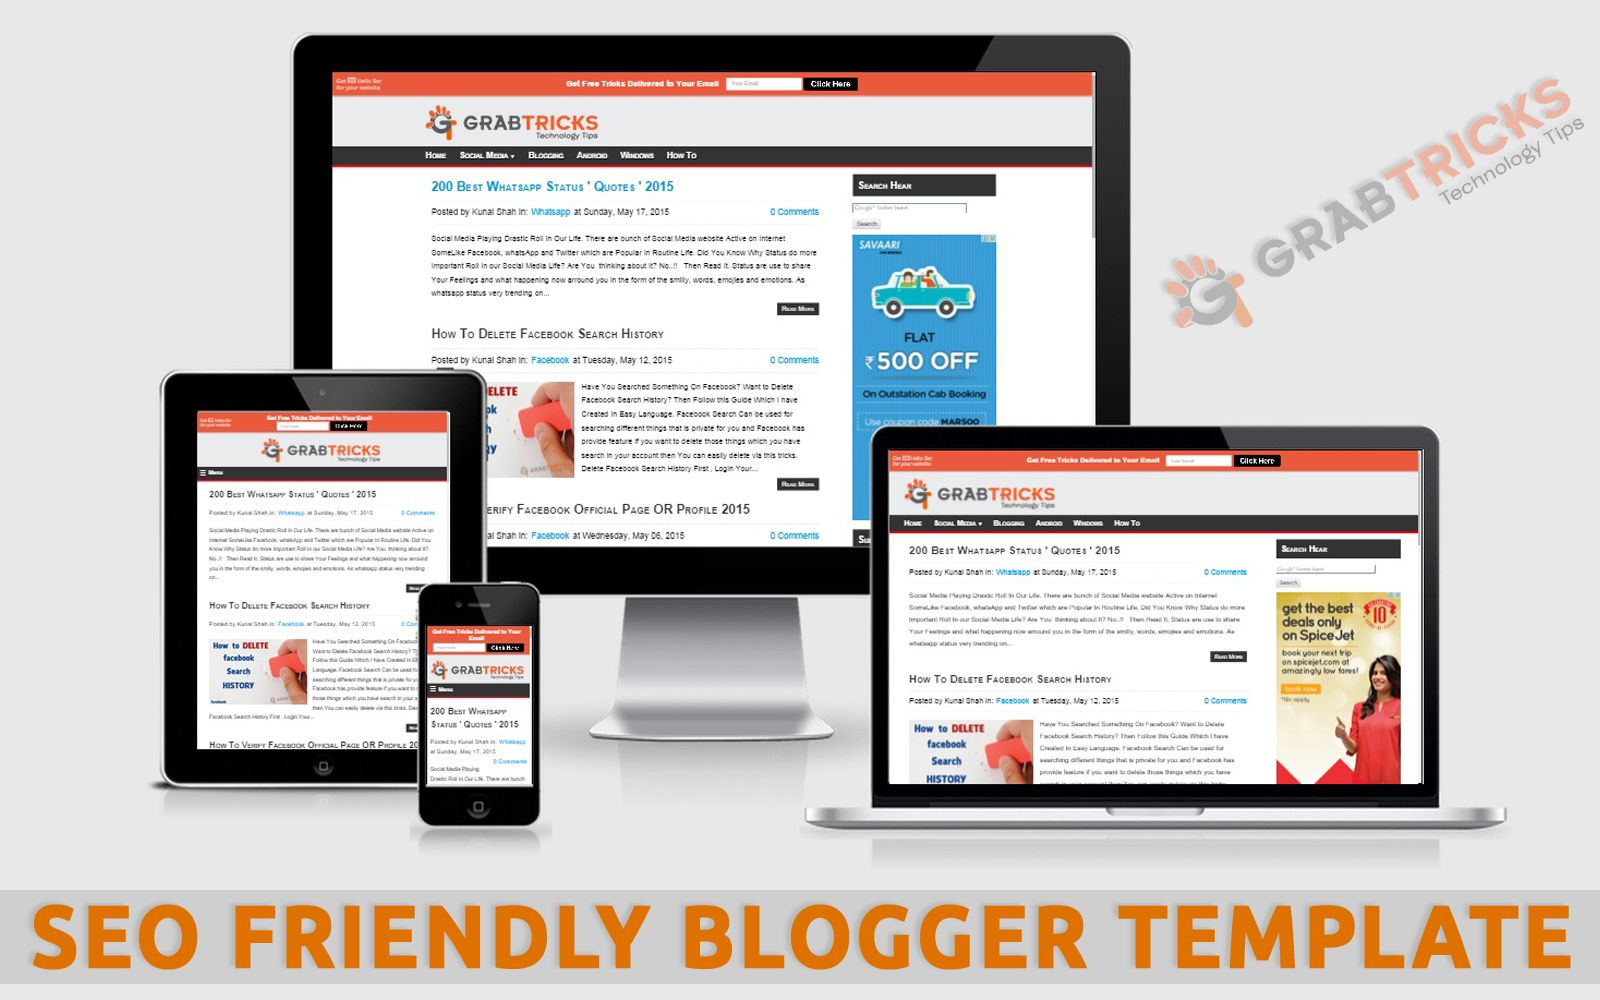 Magnificent Seo Friendly Template Image Collection - Resume Ideas ...